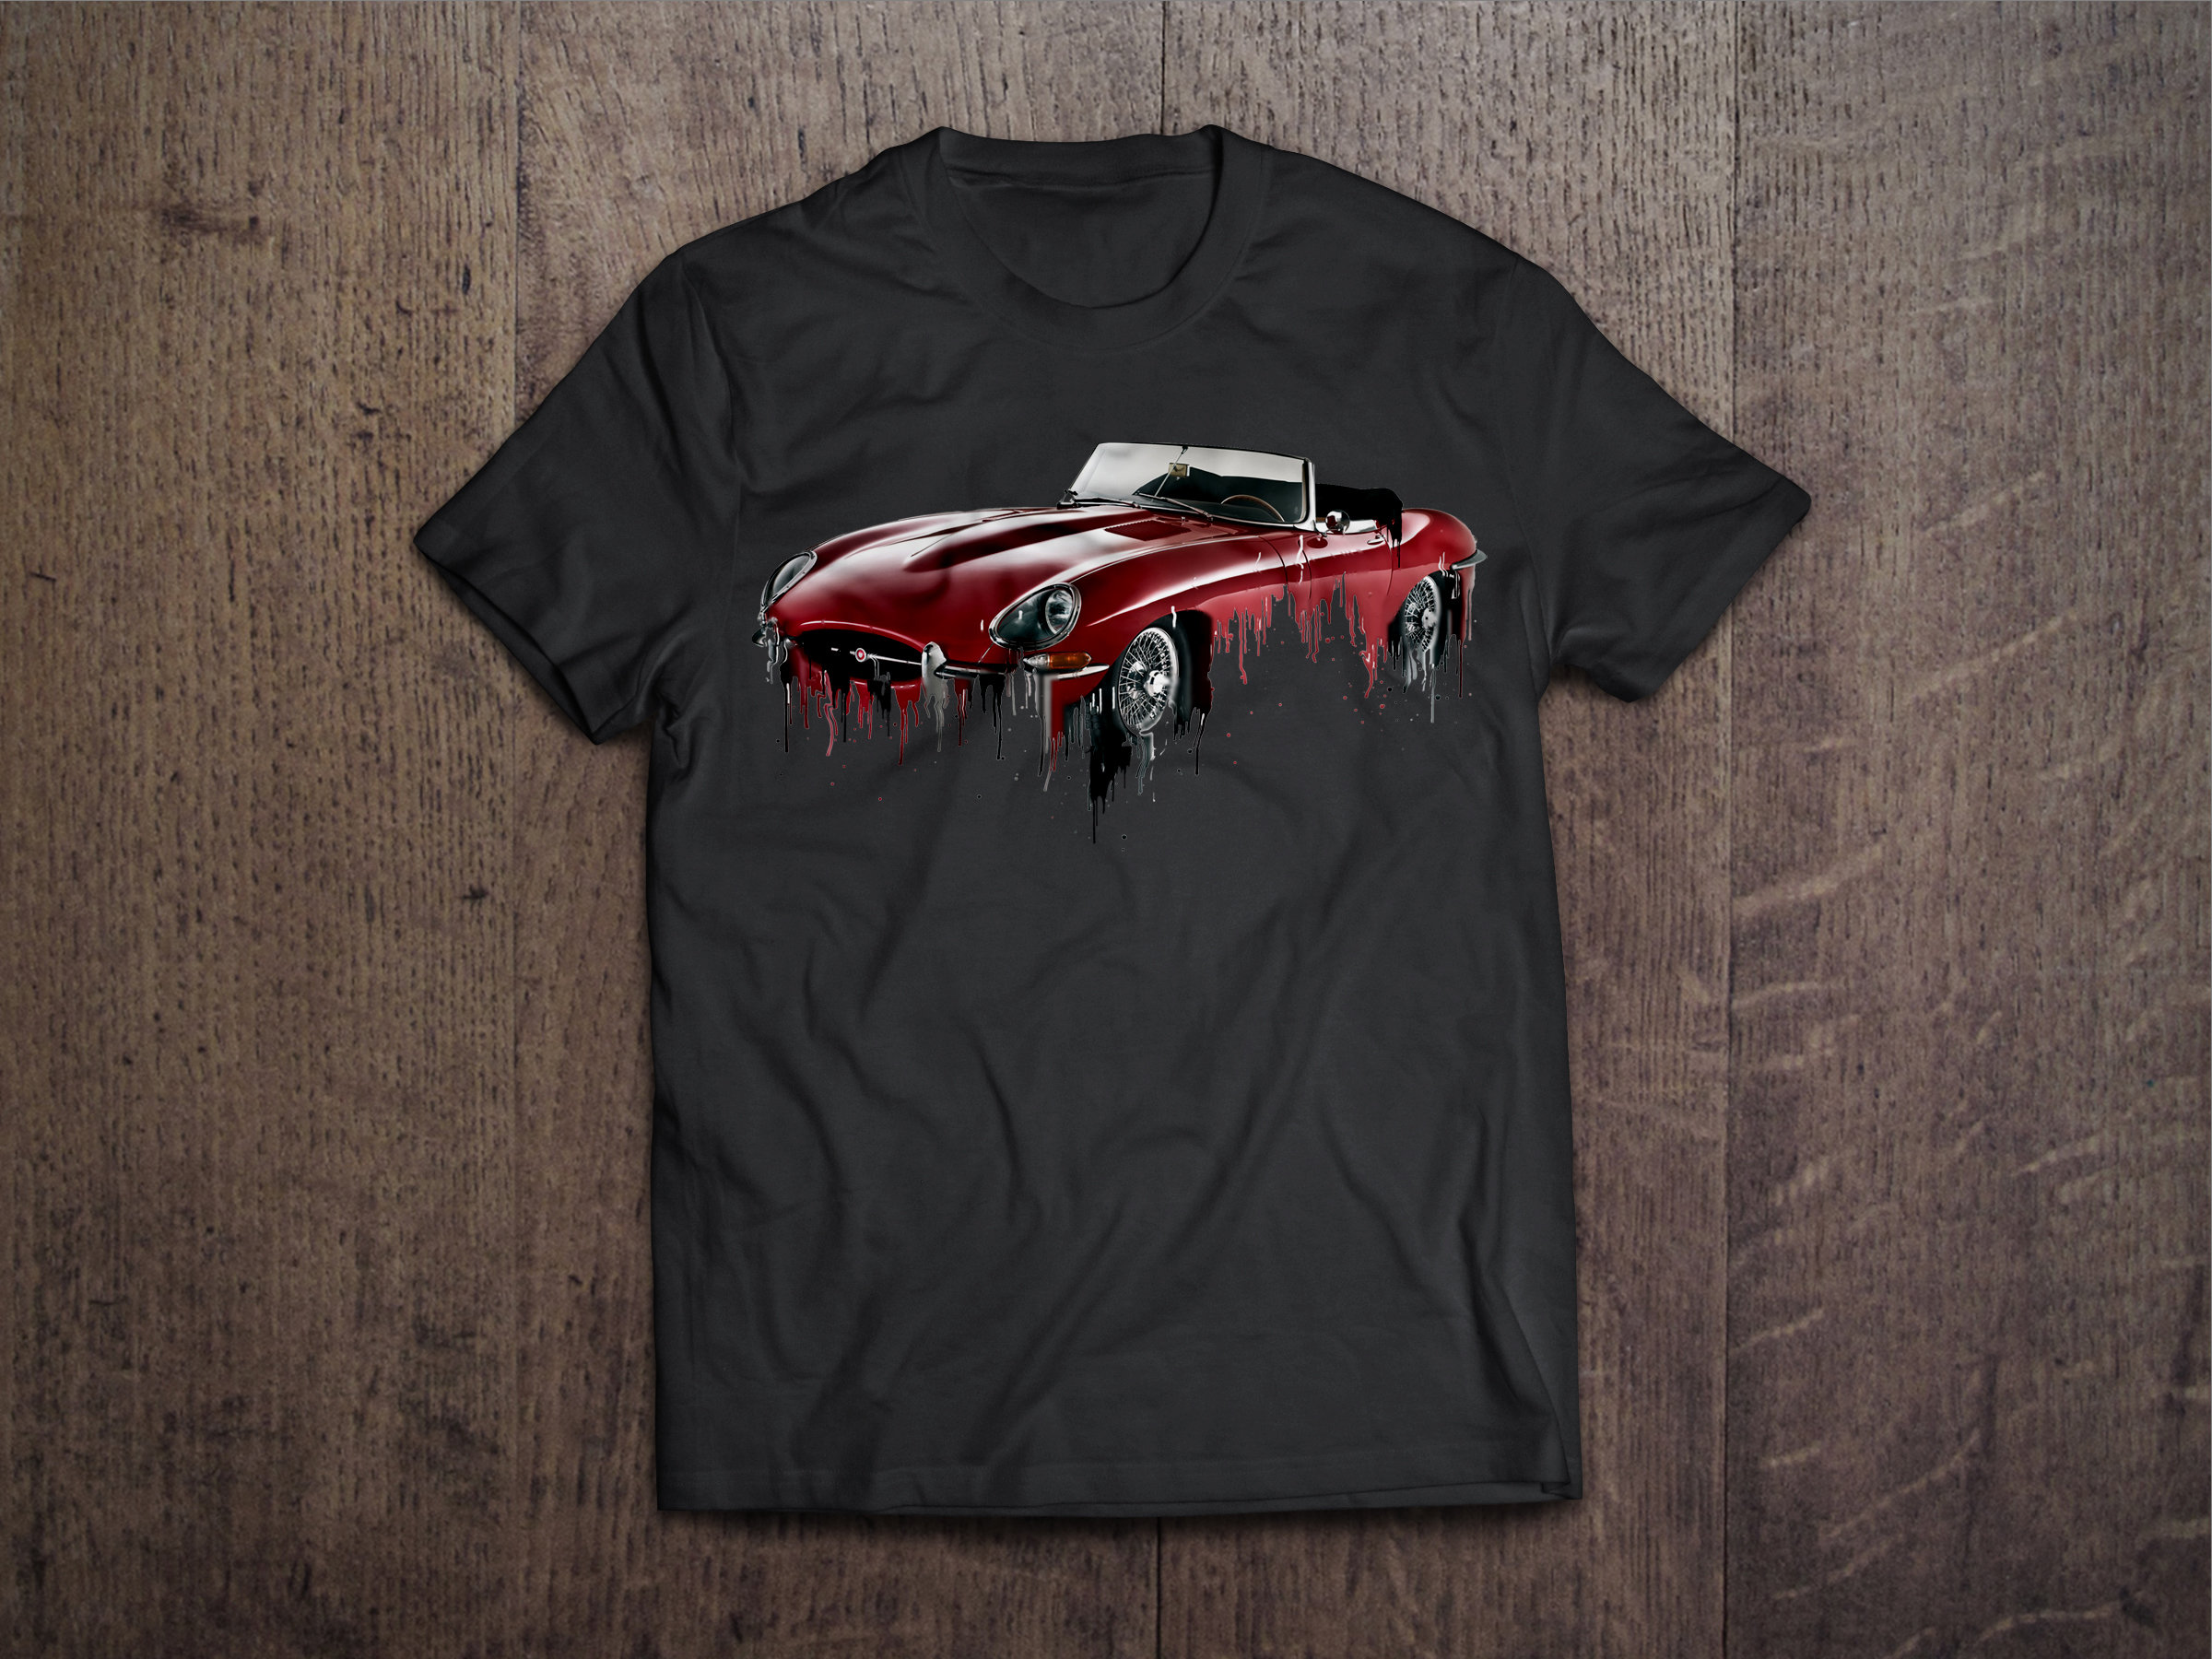 Jaguar E Type Liquid Metal Jaguar E Type Liquid Metal tshirt